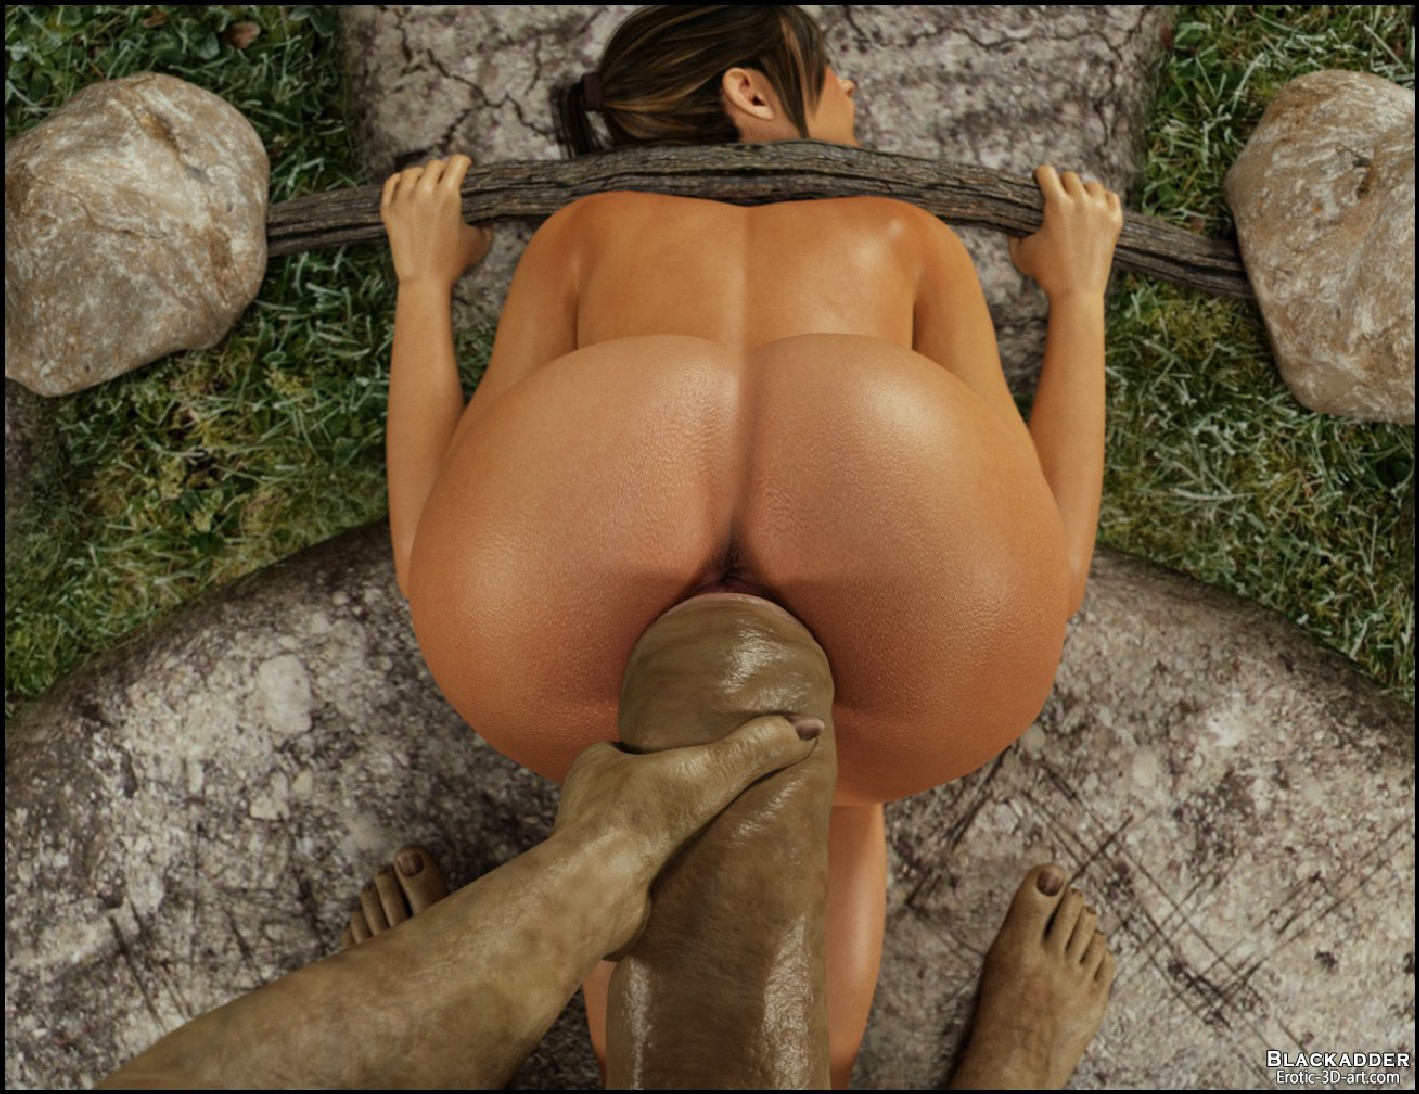 Anal in slime 3d erotic galleries